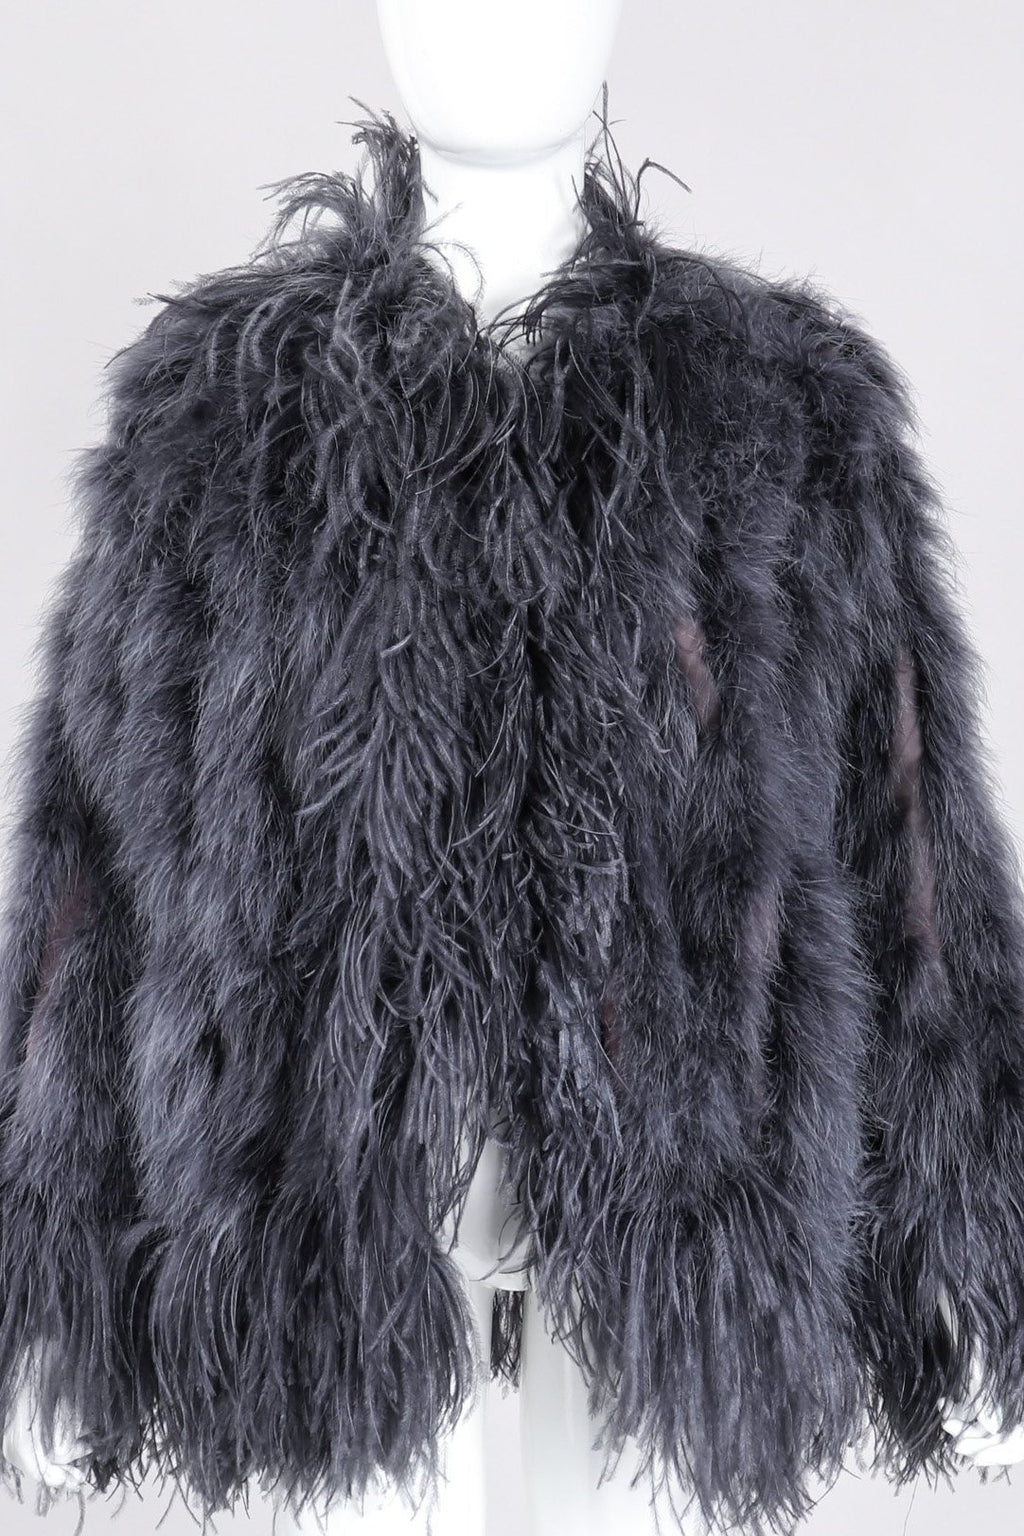 6b0fe8a32c2 Recess Los Angeles Vintage YSL Yves Saint Laurent 70s Liberation Collection  Marabou & Ostrich Feather Glam